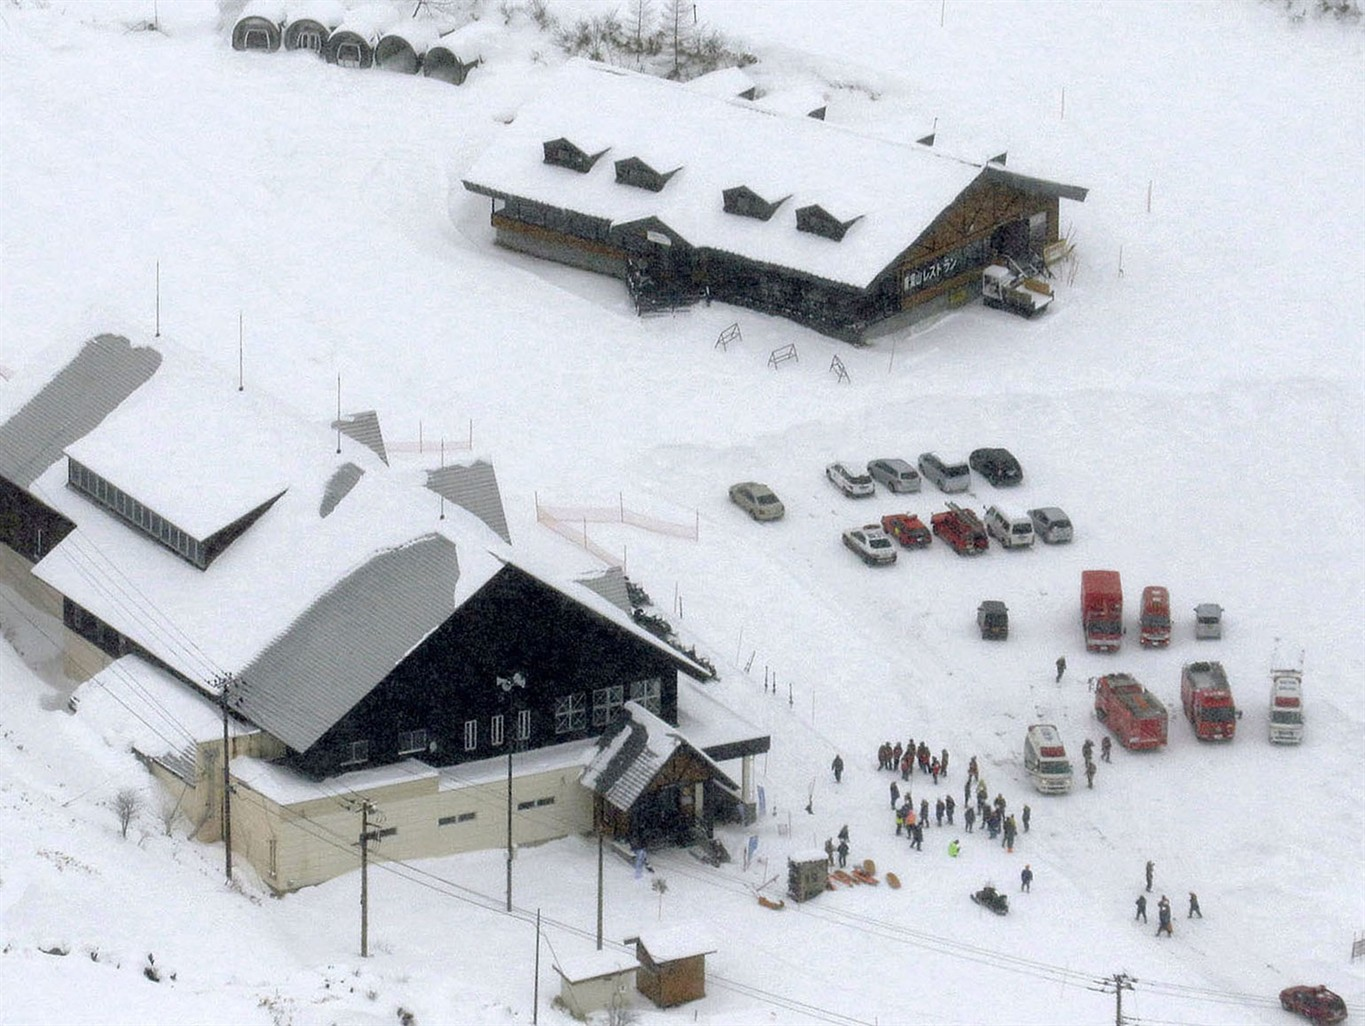 12 skiers injured by flying rocks as japanese volcano erupts - 680 news